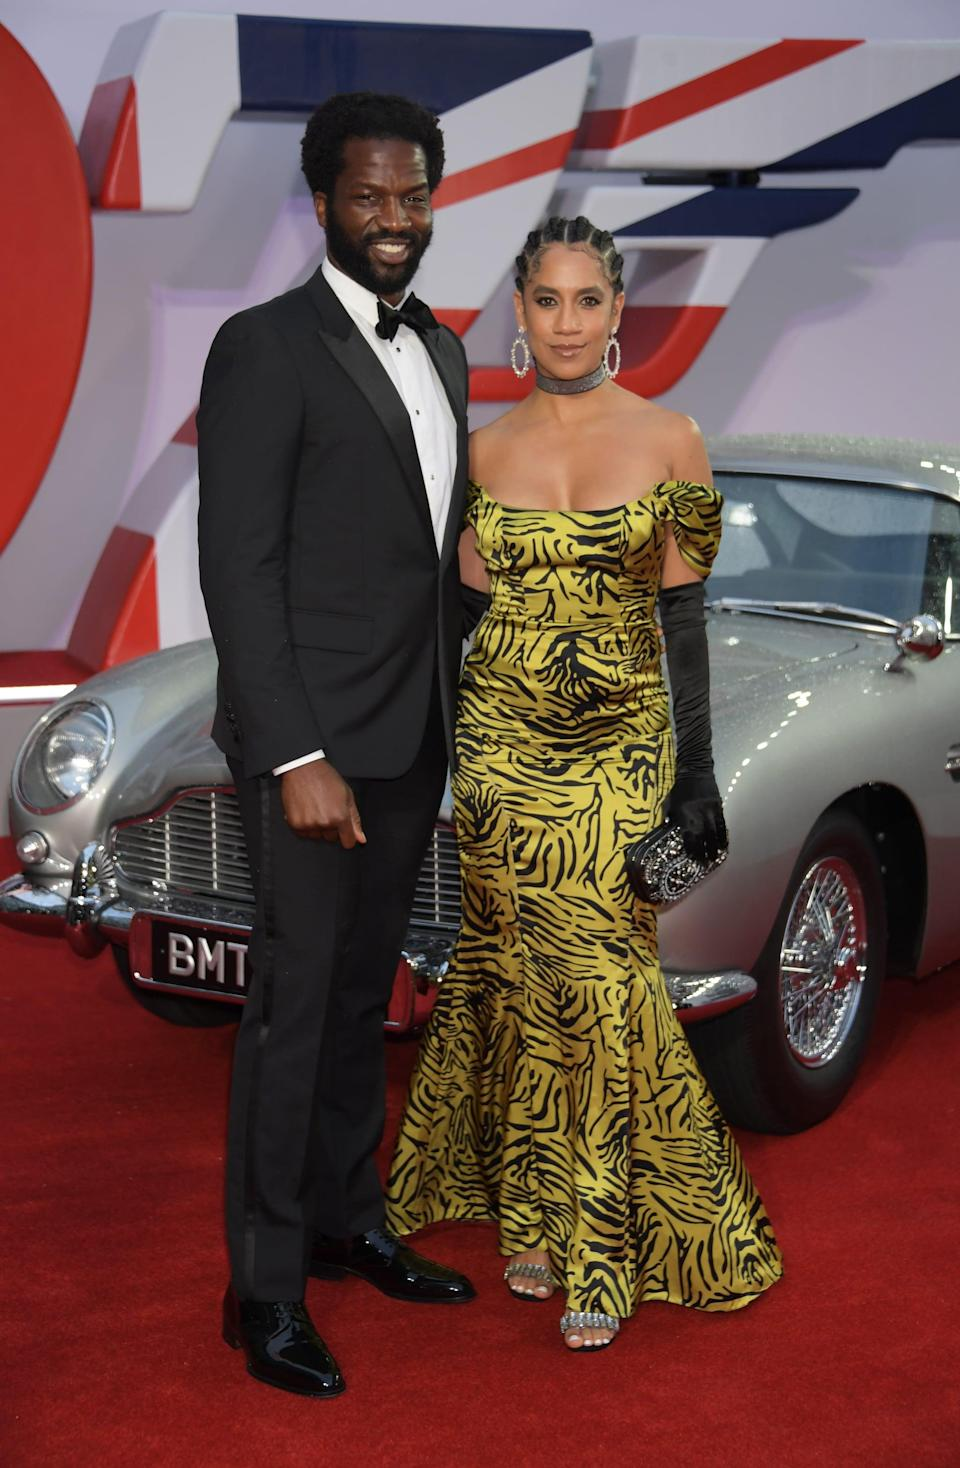 <p>Dinsu wore a black tuxedo, while Tipper wore a tiger-print gown with black opera gloves. </p>